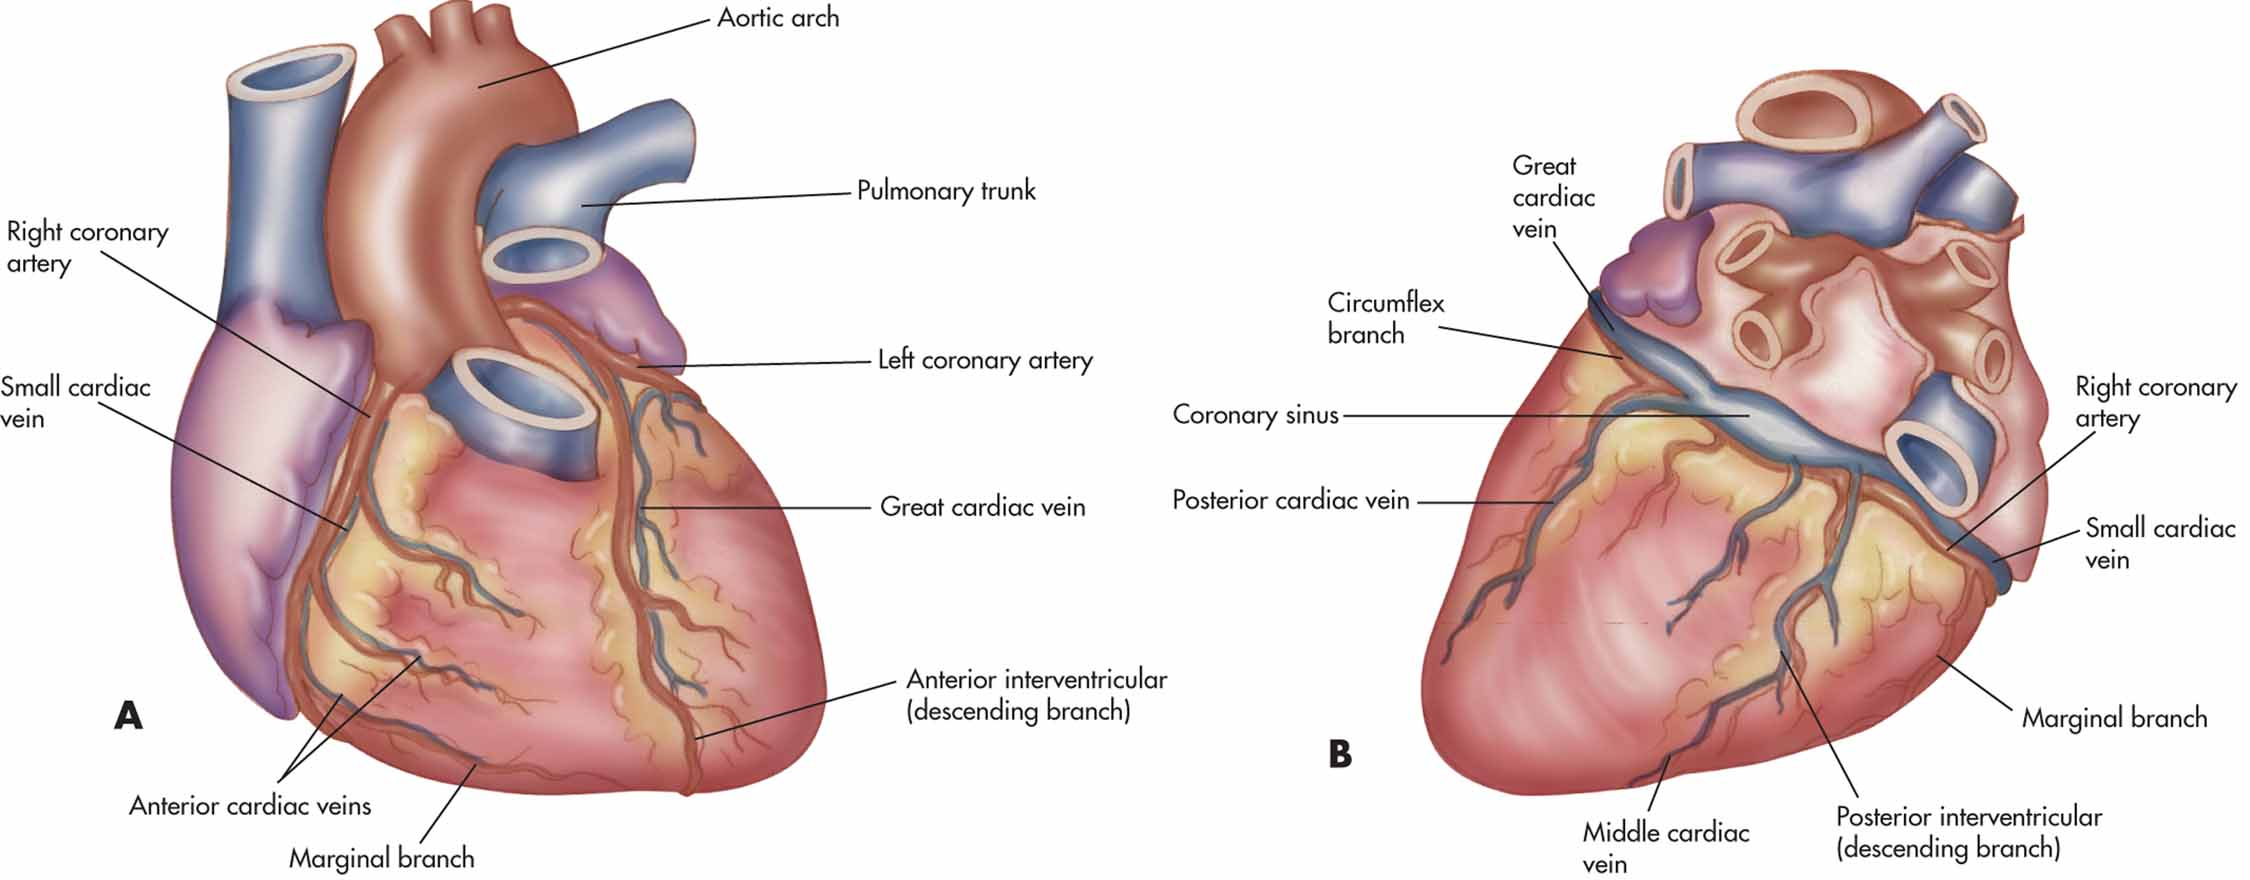 coronary heart About coronary artery disease: coronary artery disease is a narrowing or blockage of the small blood vessels that supply blood and oxygen to the heart it is caused by atherosclerosis,a buildup of plaque in the arteries to your heart.